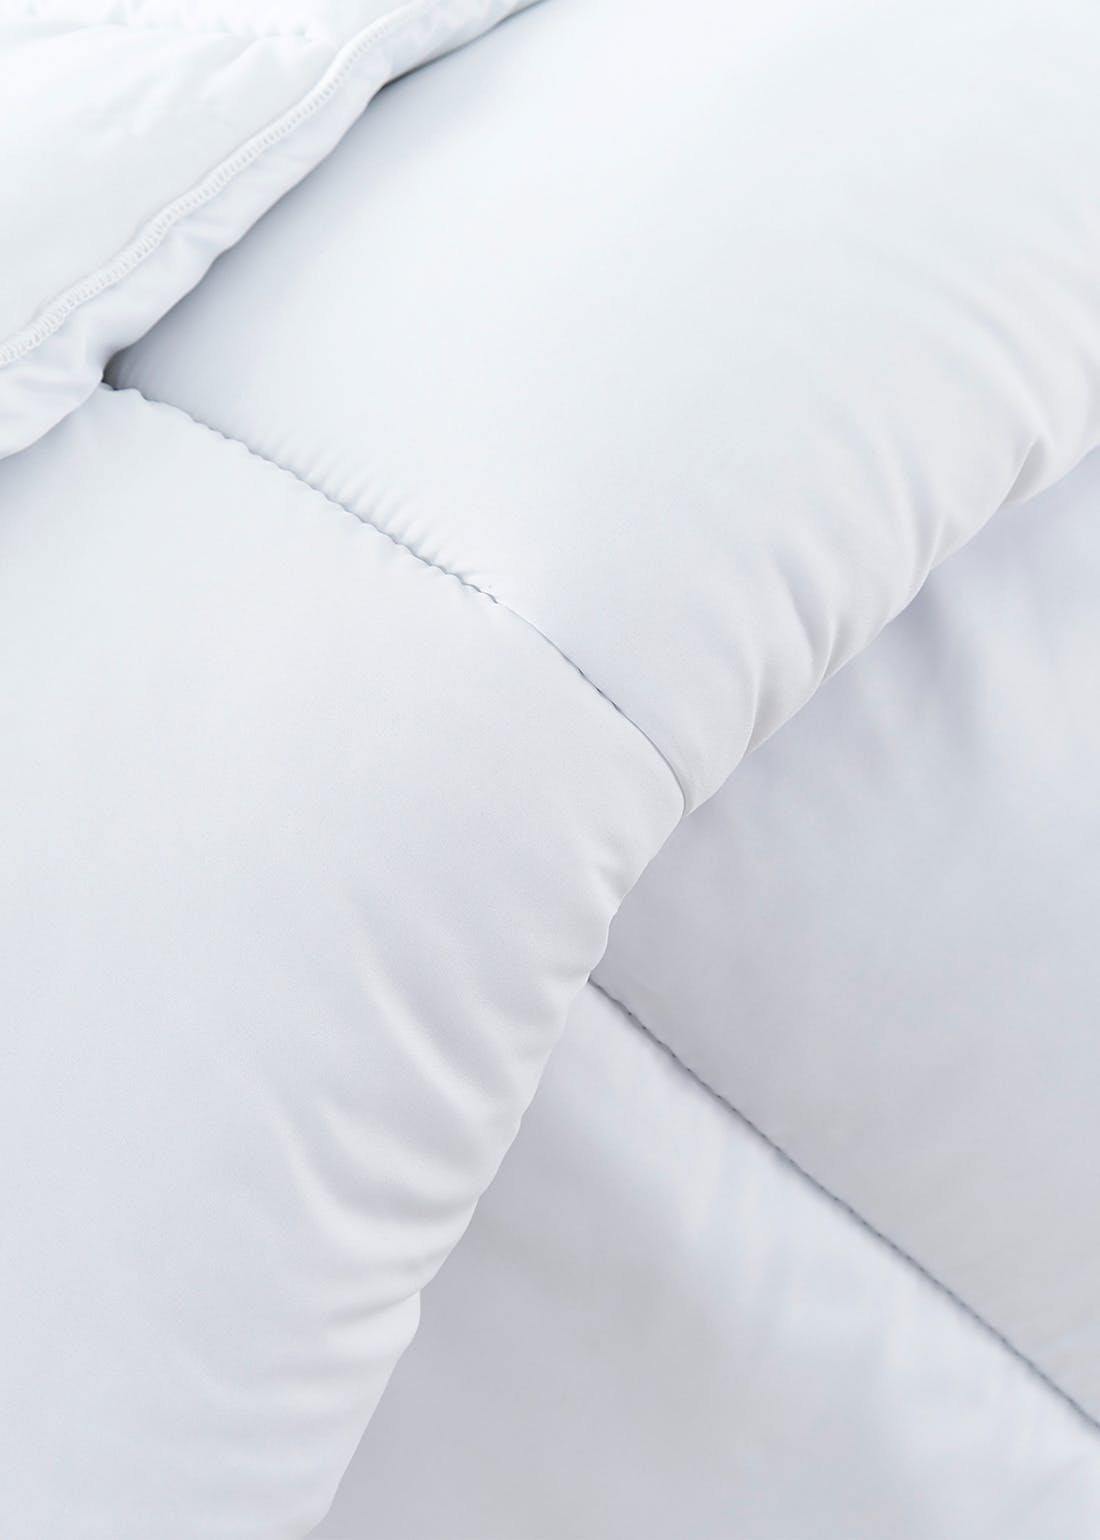 Silentnight So Snug Duvet (13.5 Tog)